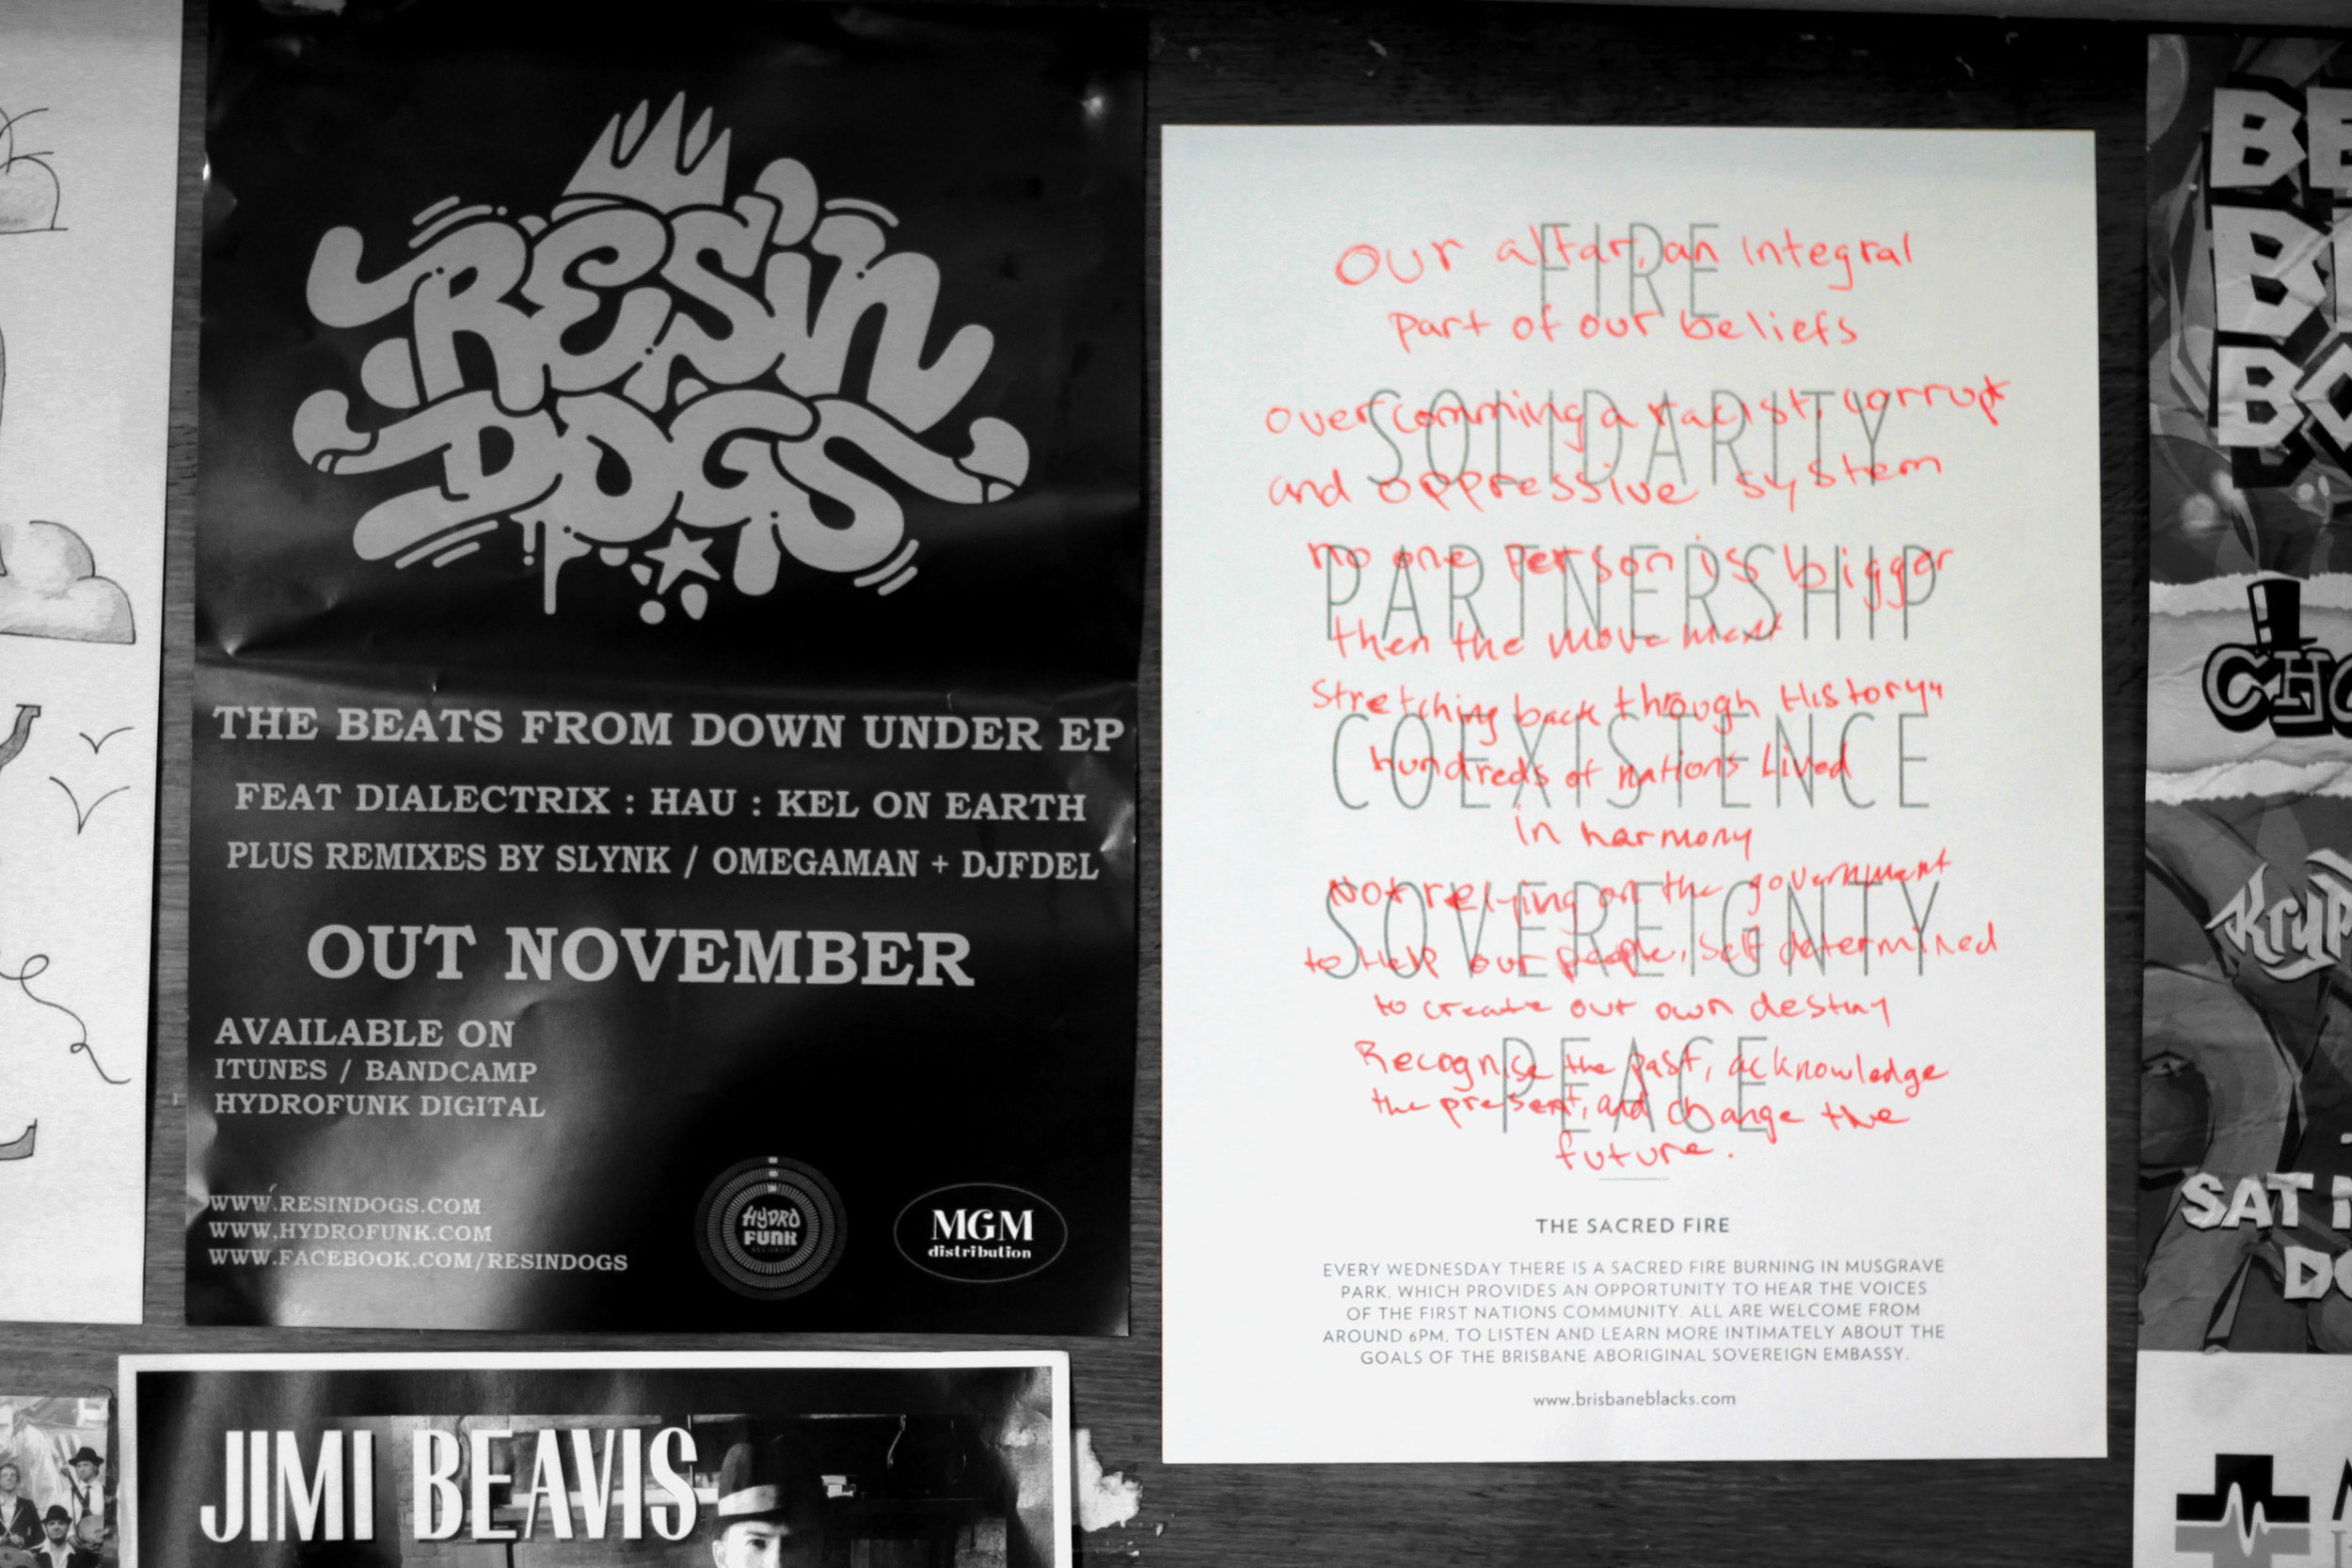 In the beginning we asked shops to help us spread the good word by hanging the posters in their stores.